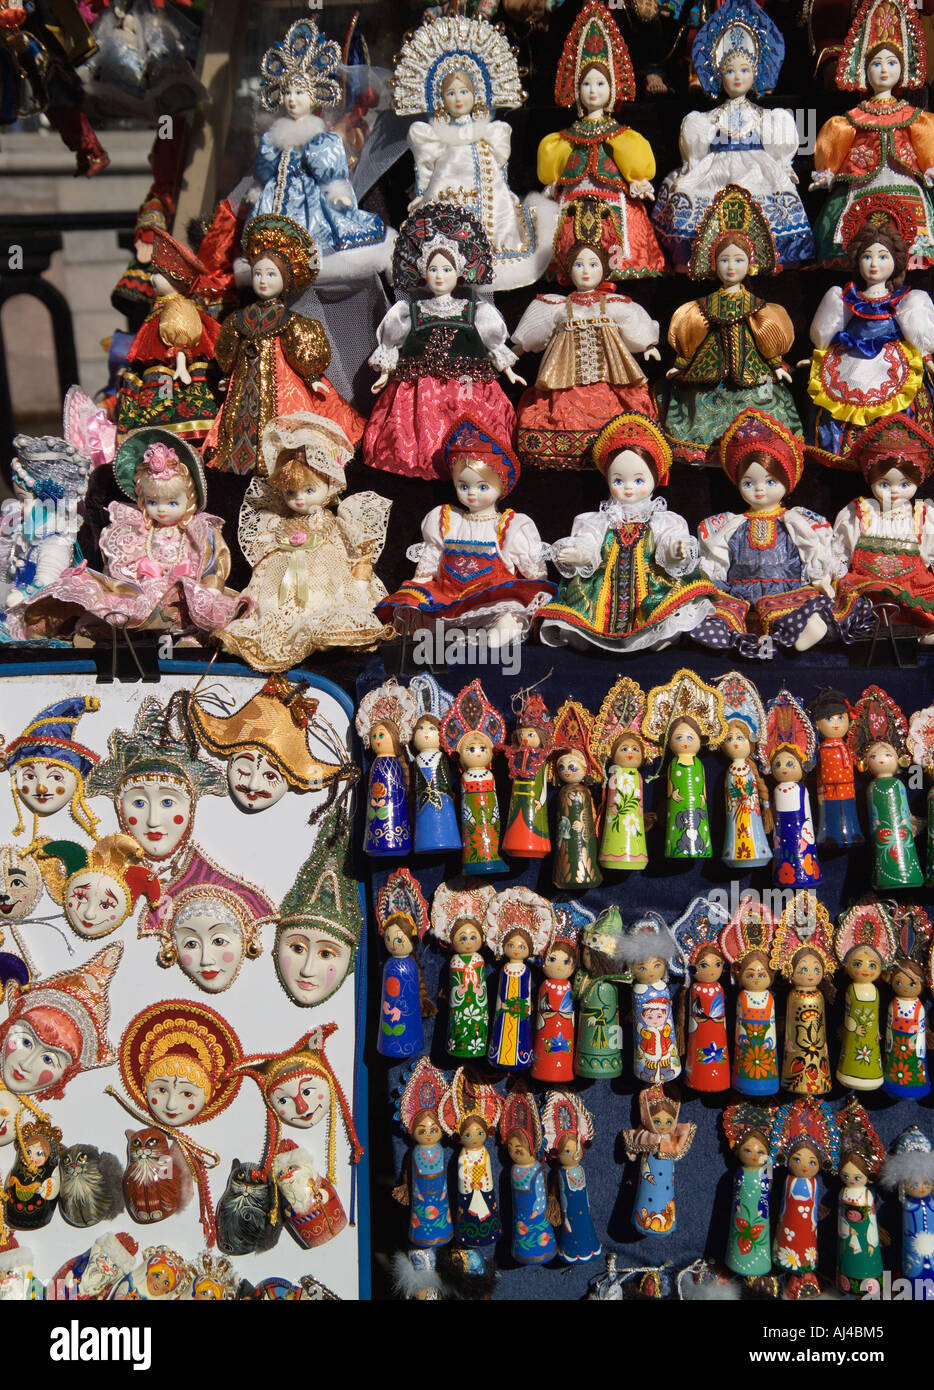 Souvenir Stall St Petersburg Russia Stock Photo, Royalty